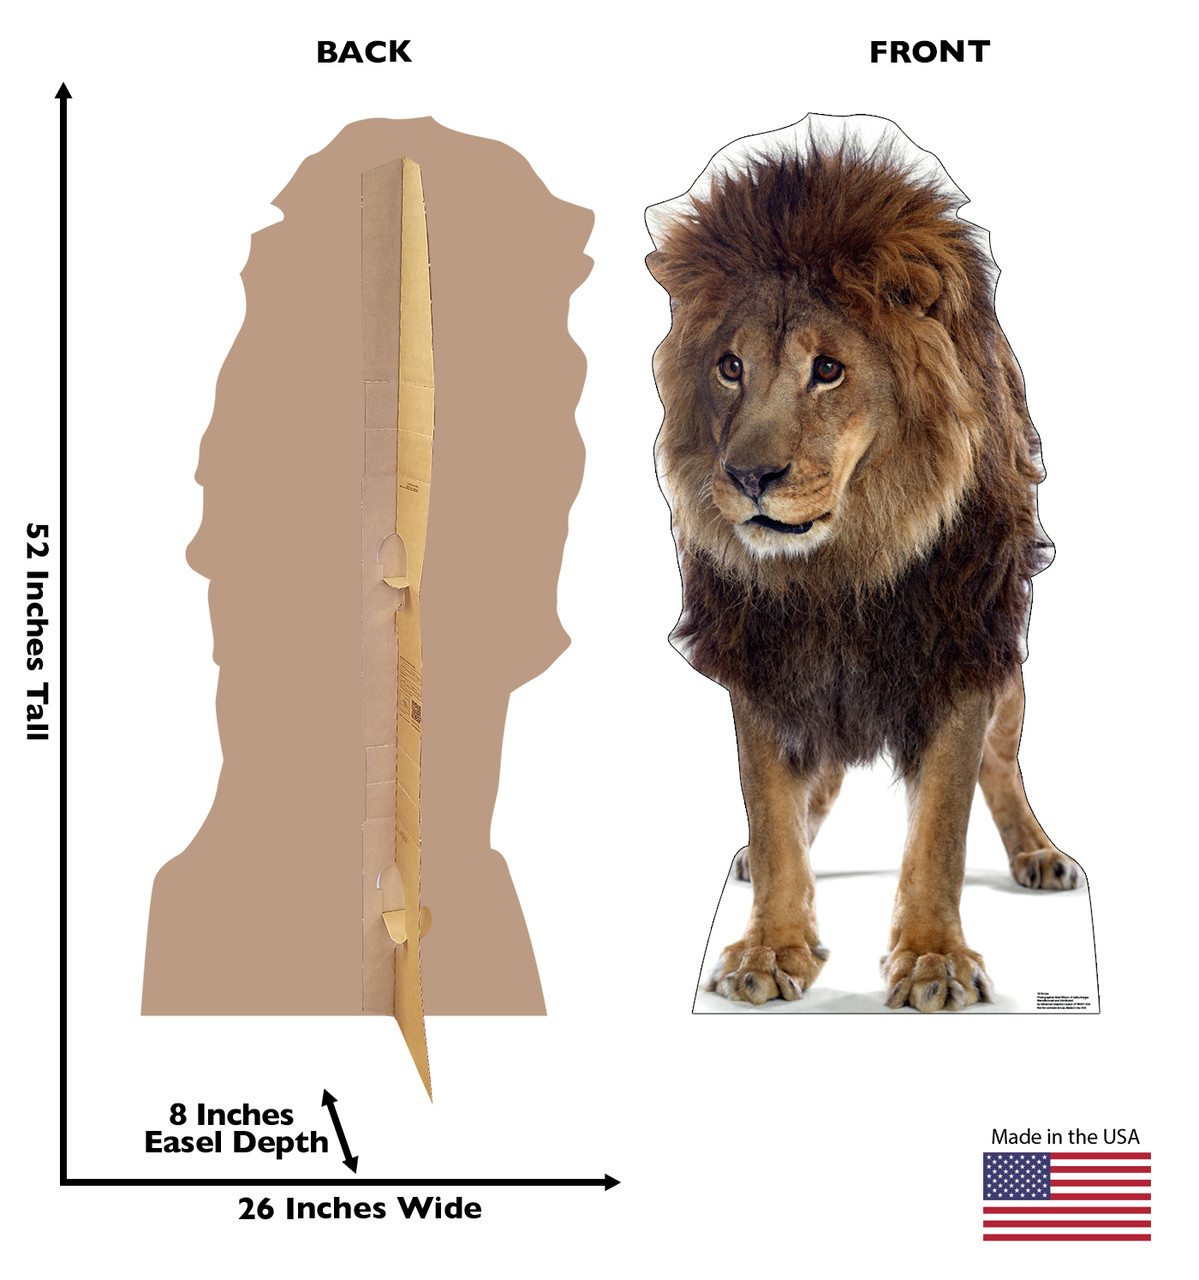 Life-size cardboard standee of a Lion with front and back dimensions.